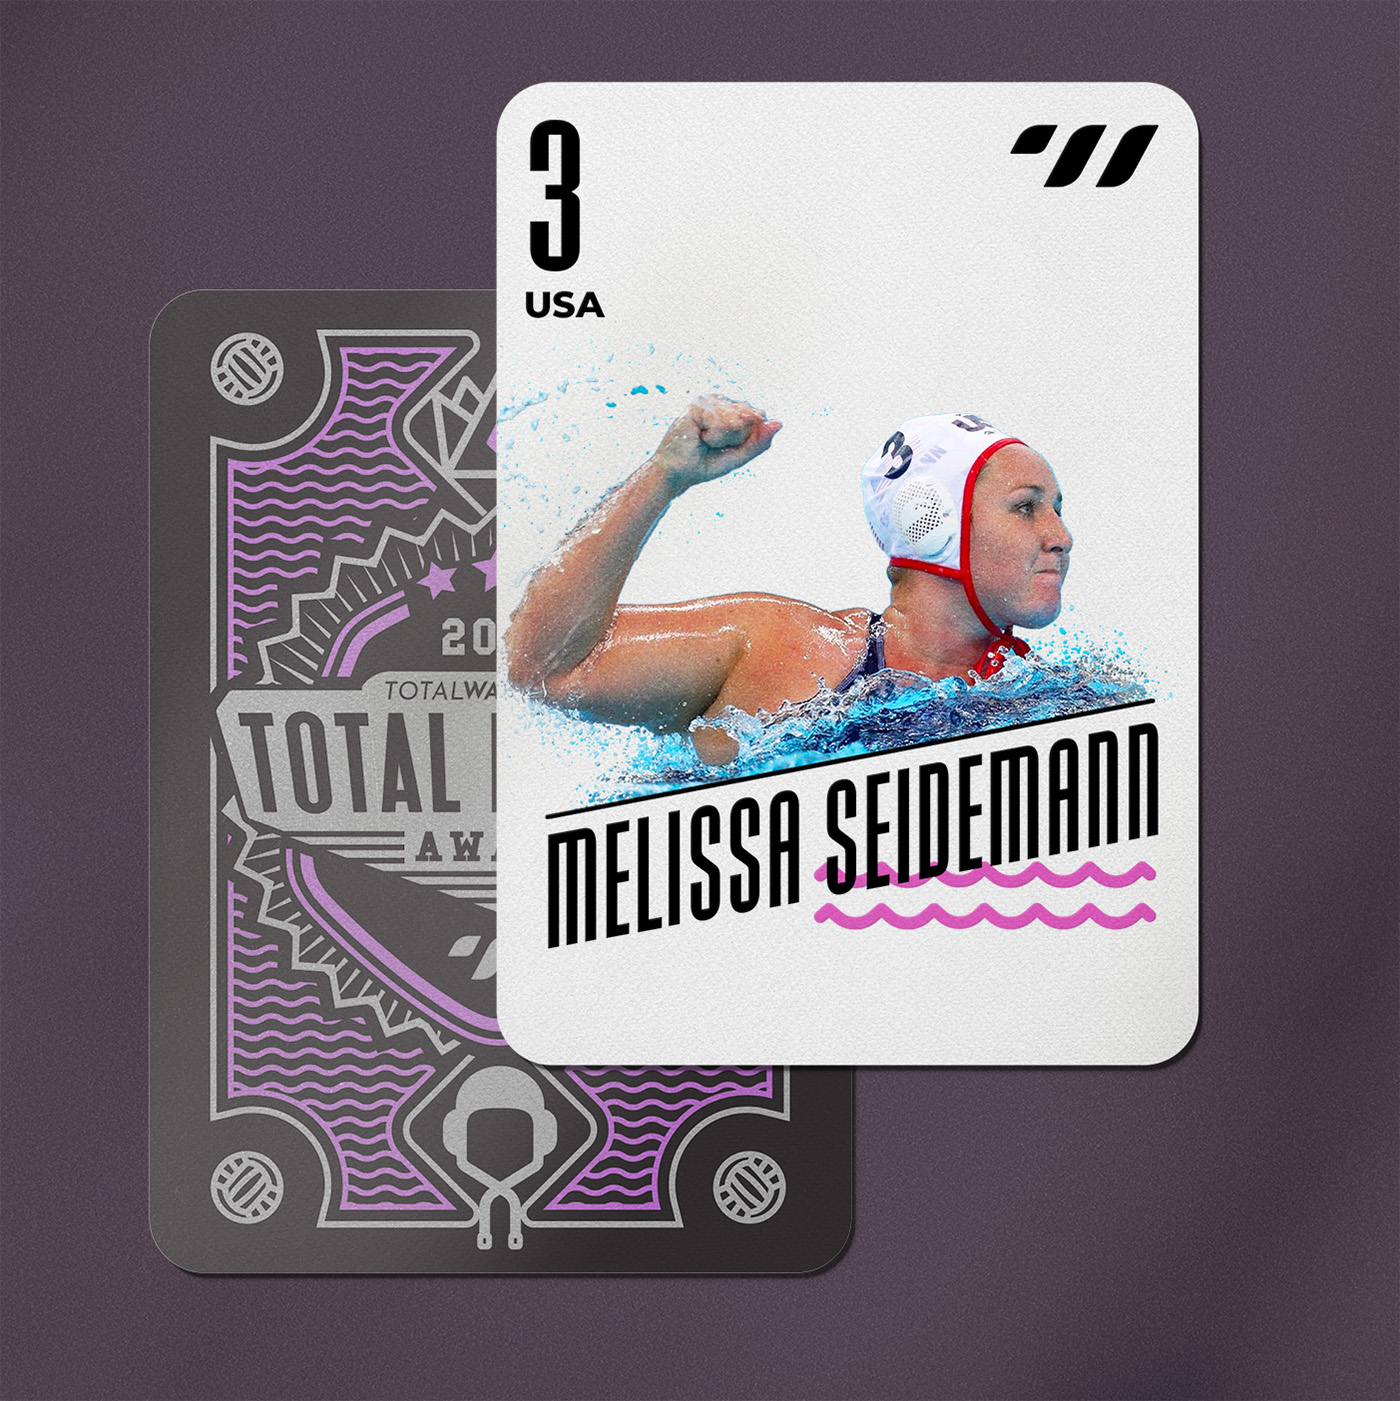 CENTER BACK - Melissa Seidemann (USA)